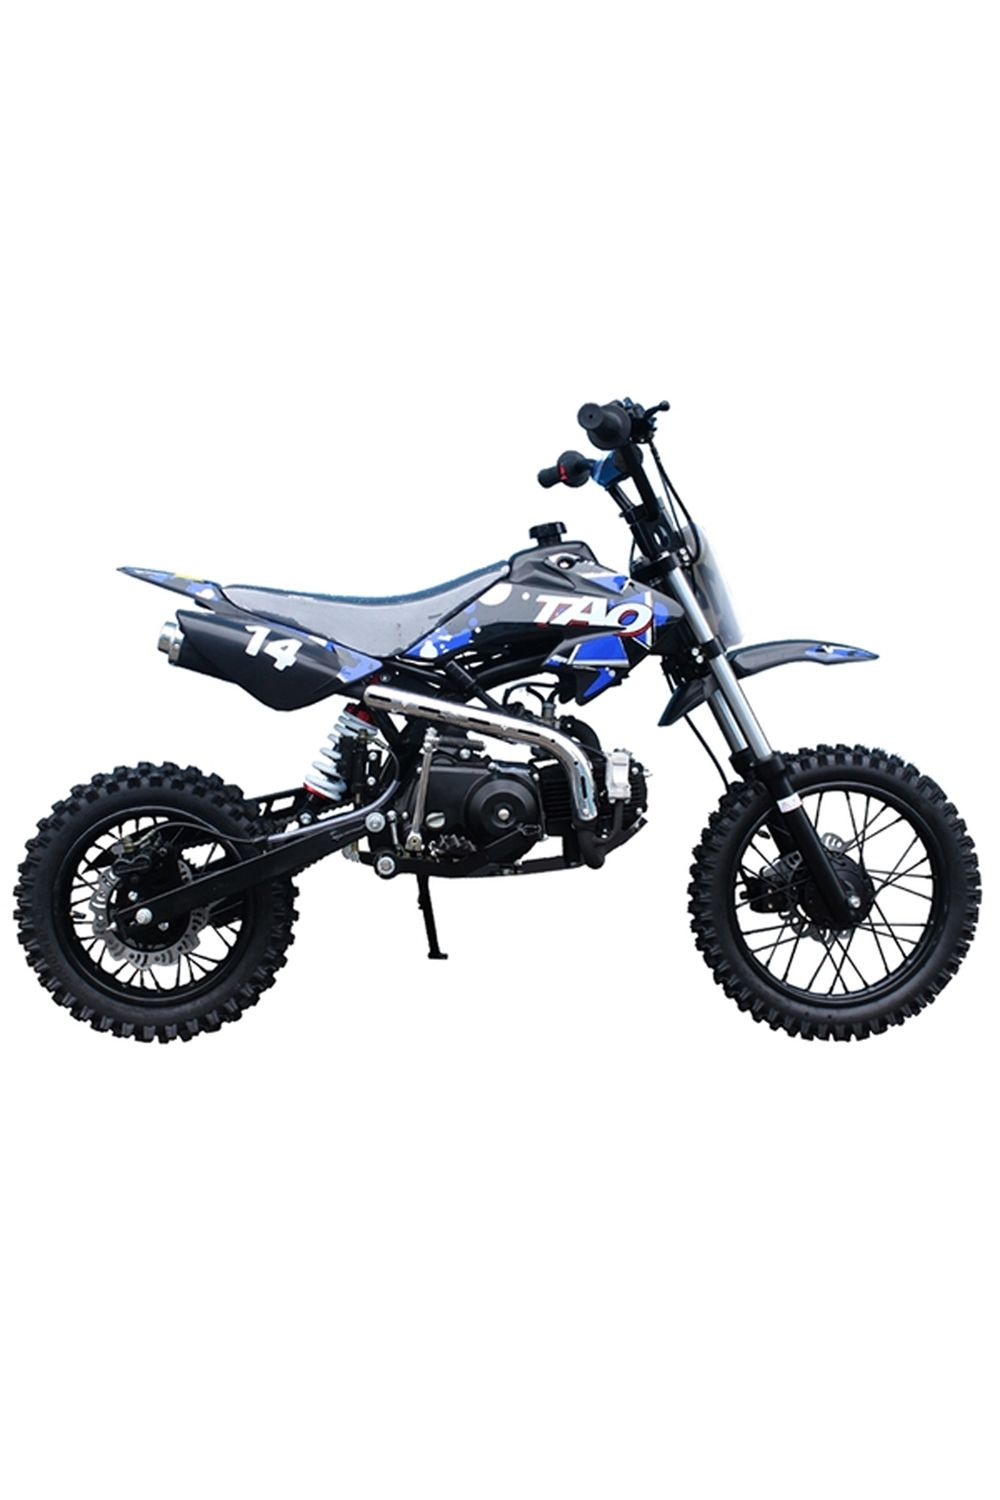 Db T005 Taotao Db 14 110cc Dirt Bike With Semi Automatic